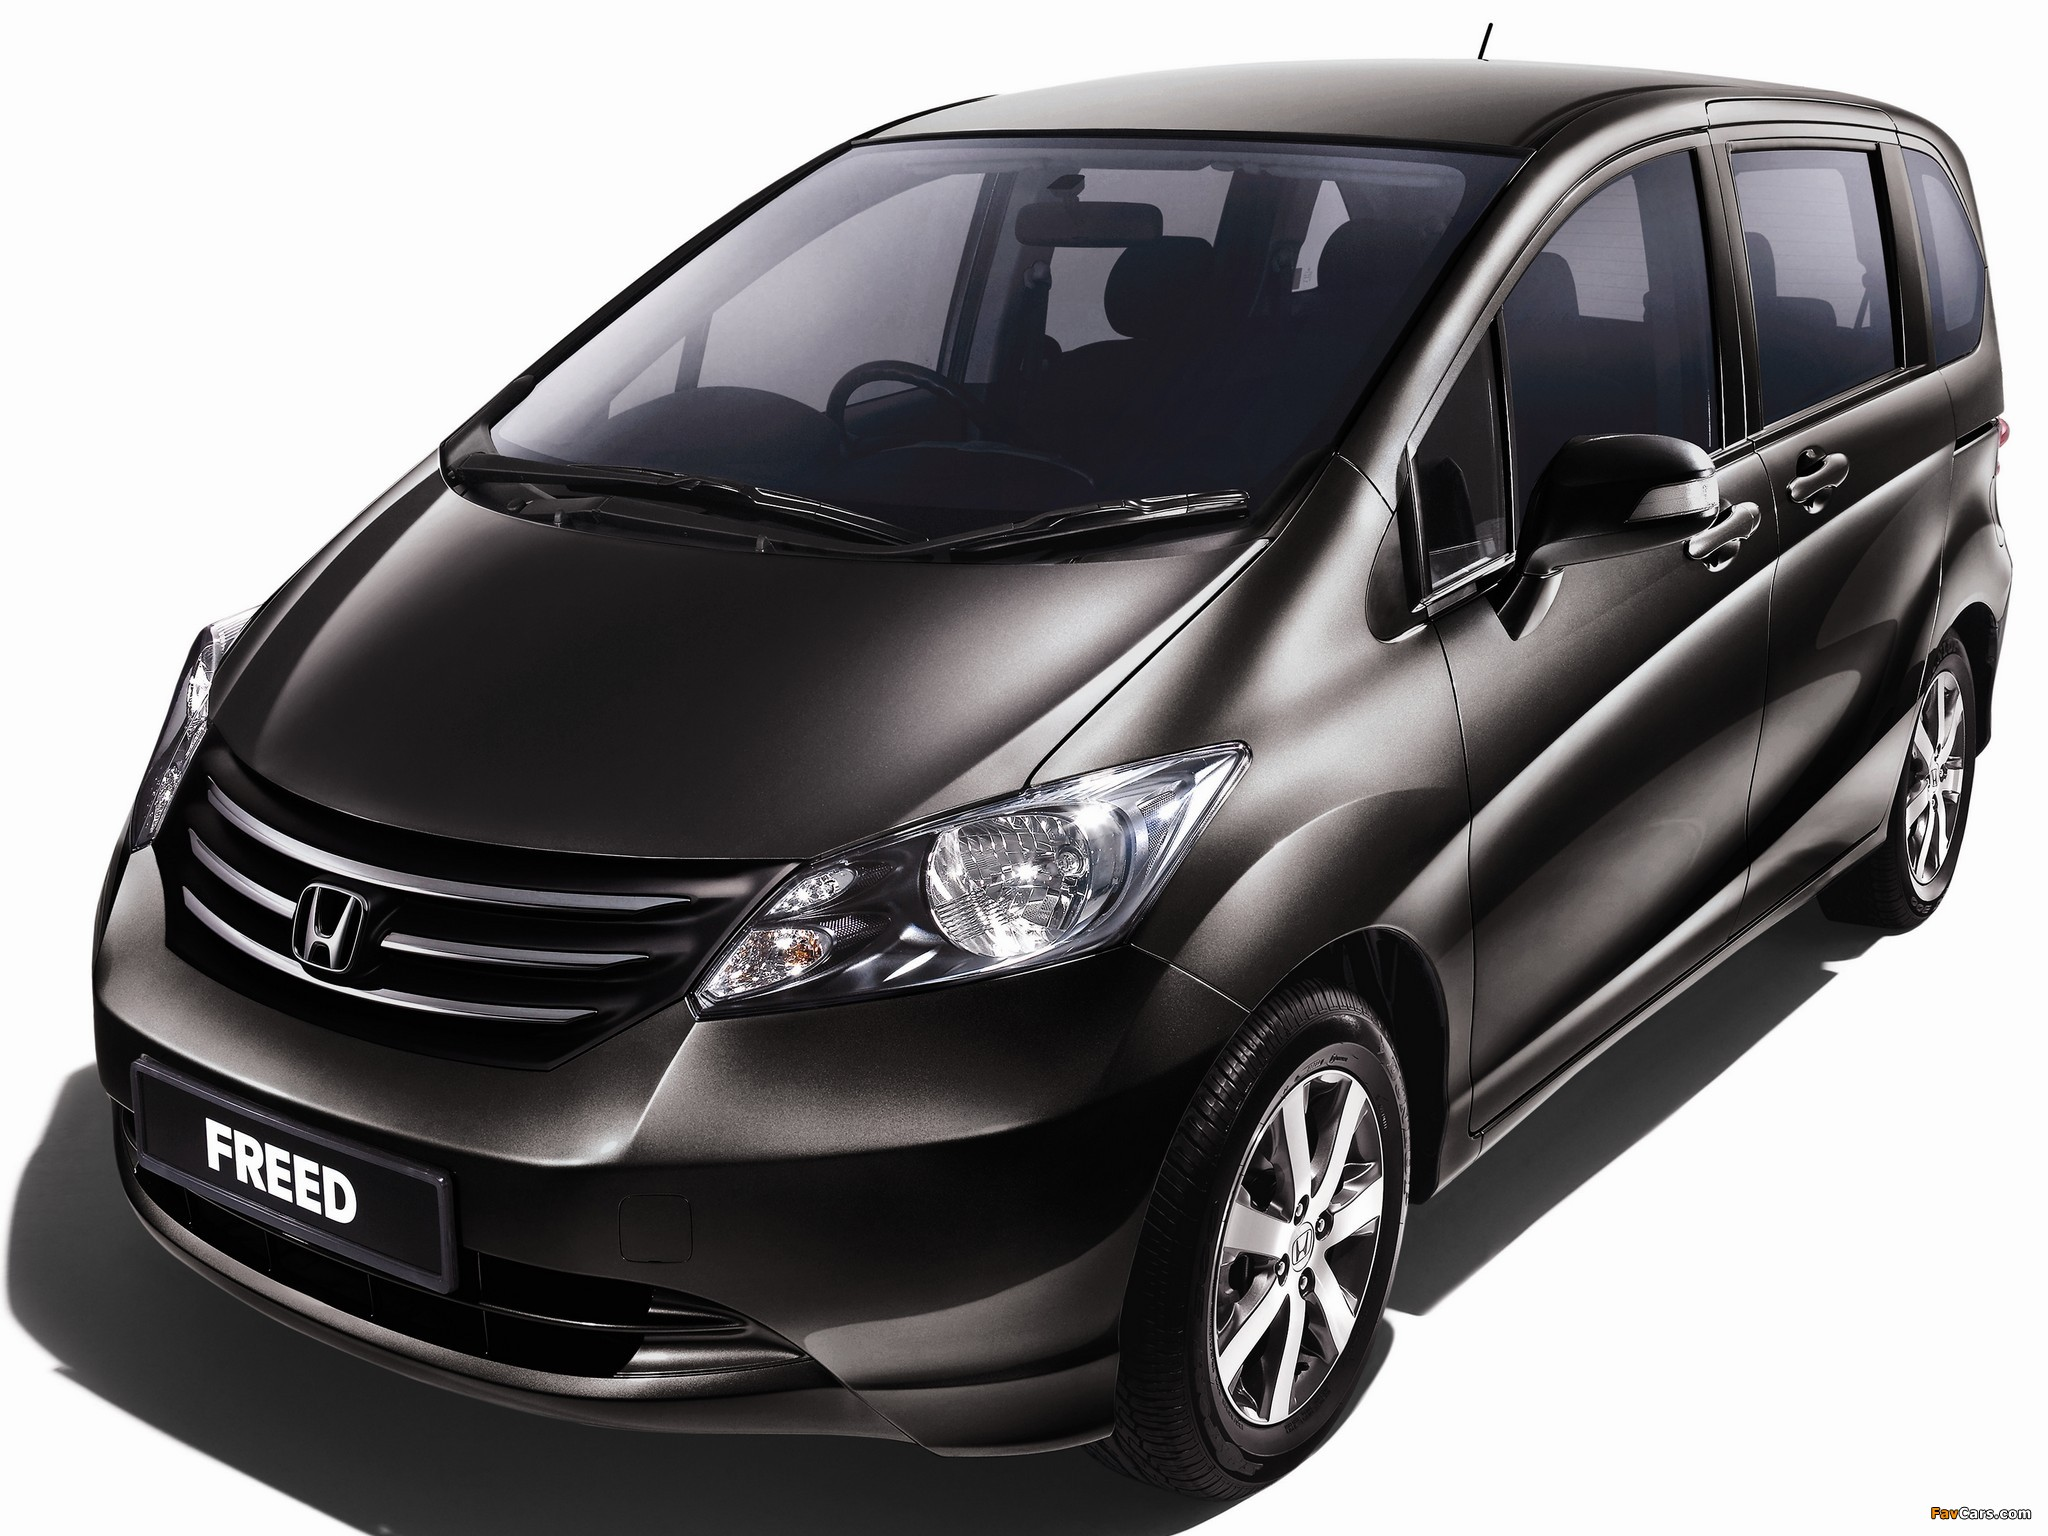 Honda Freed Aero Package (GB3) 2008-11 pictures (2048x1536)